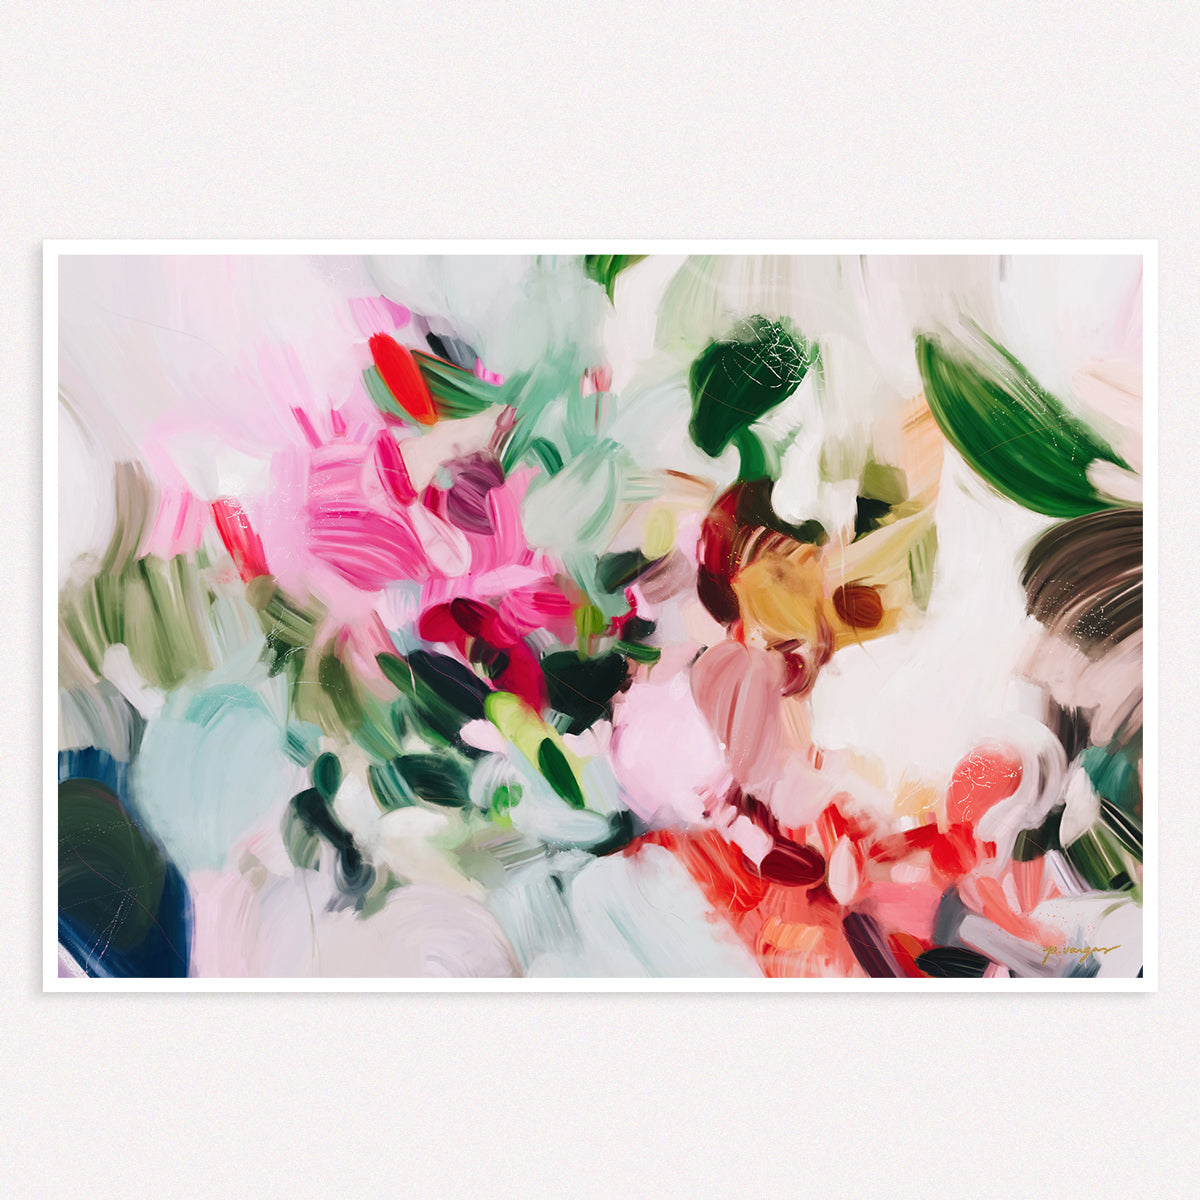 Bloom, colorful abstract art print by Parima Studio